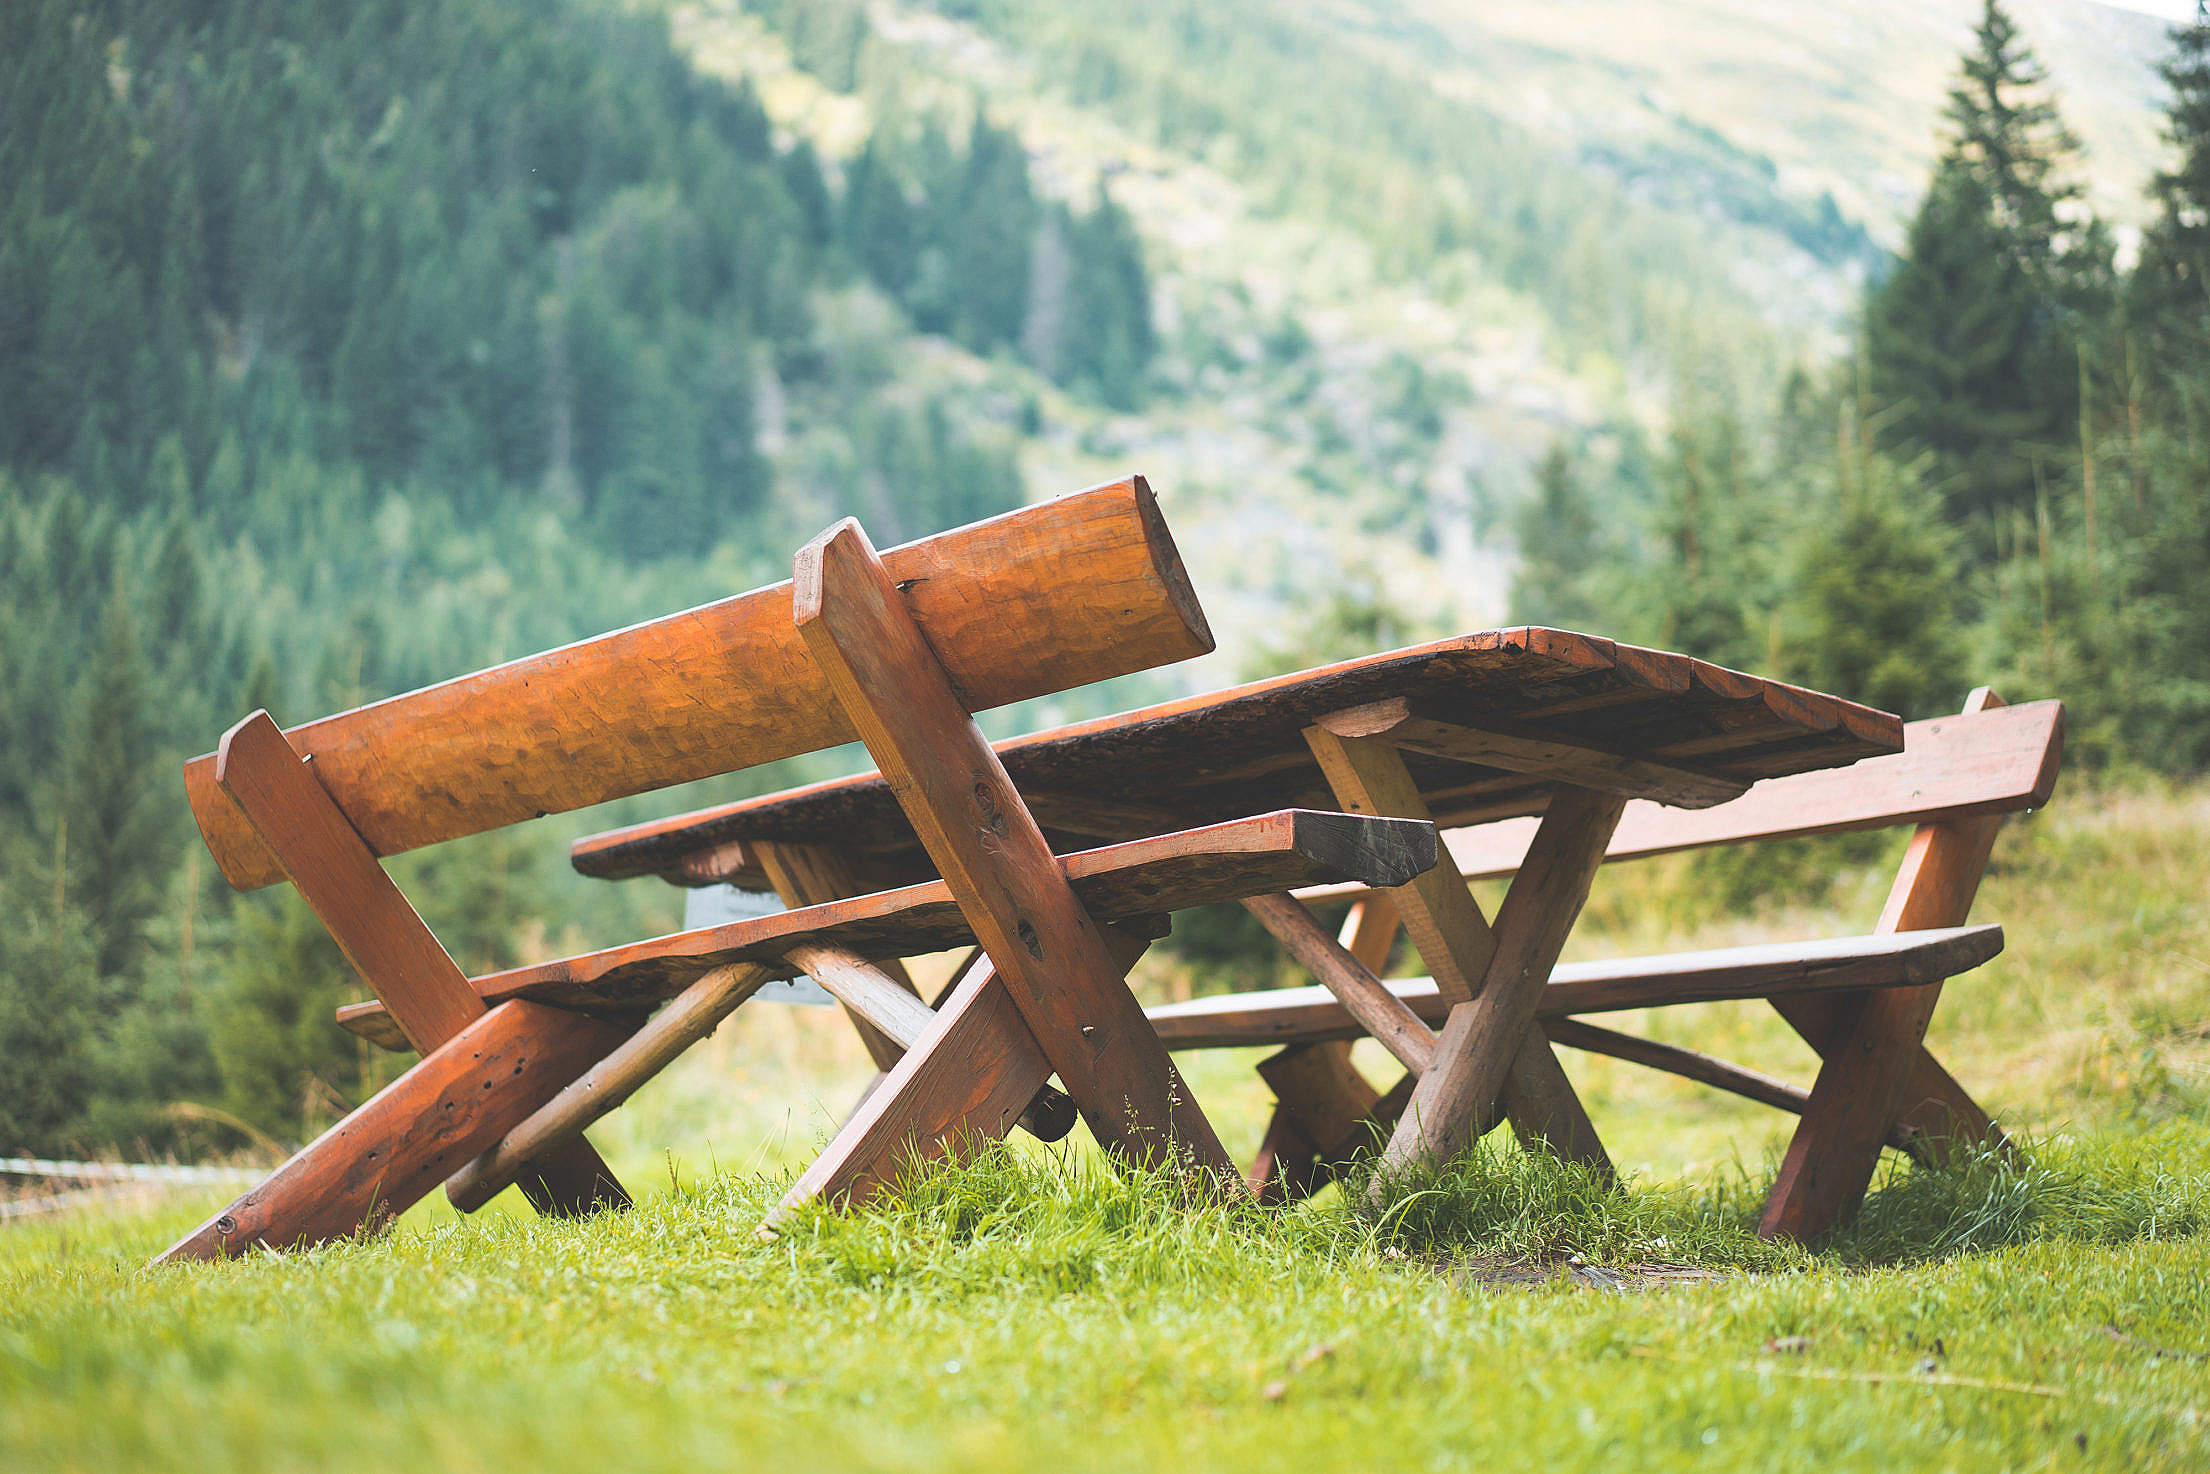 Wooden Picnic Seating Area in the Middle of Mountains Free Stock Photo